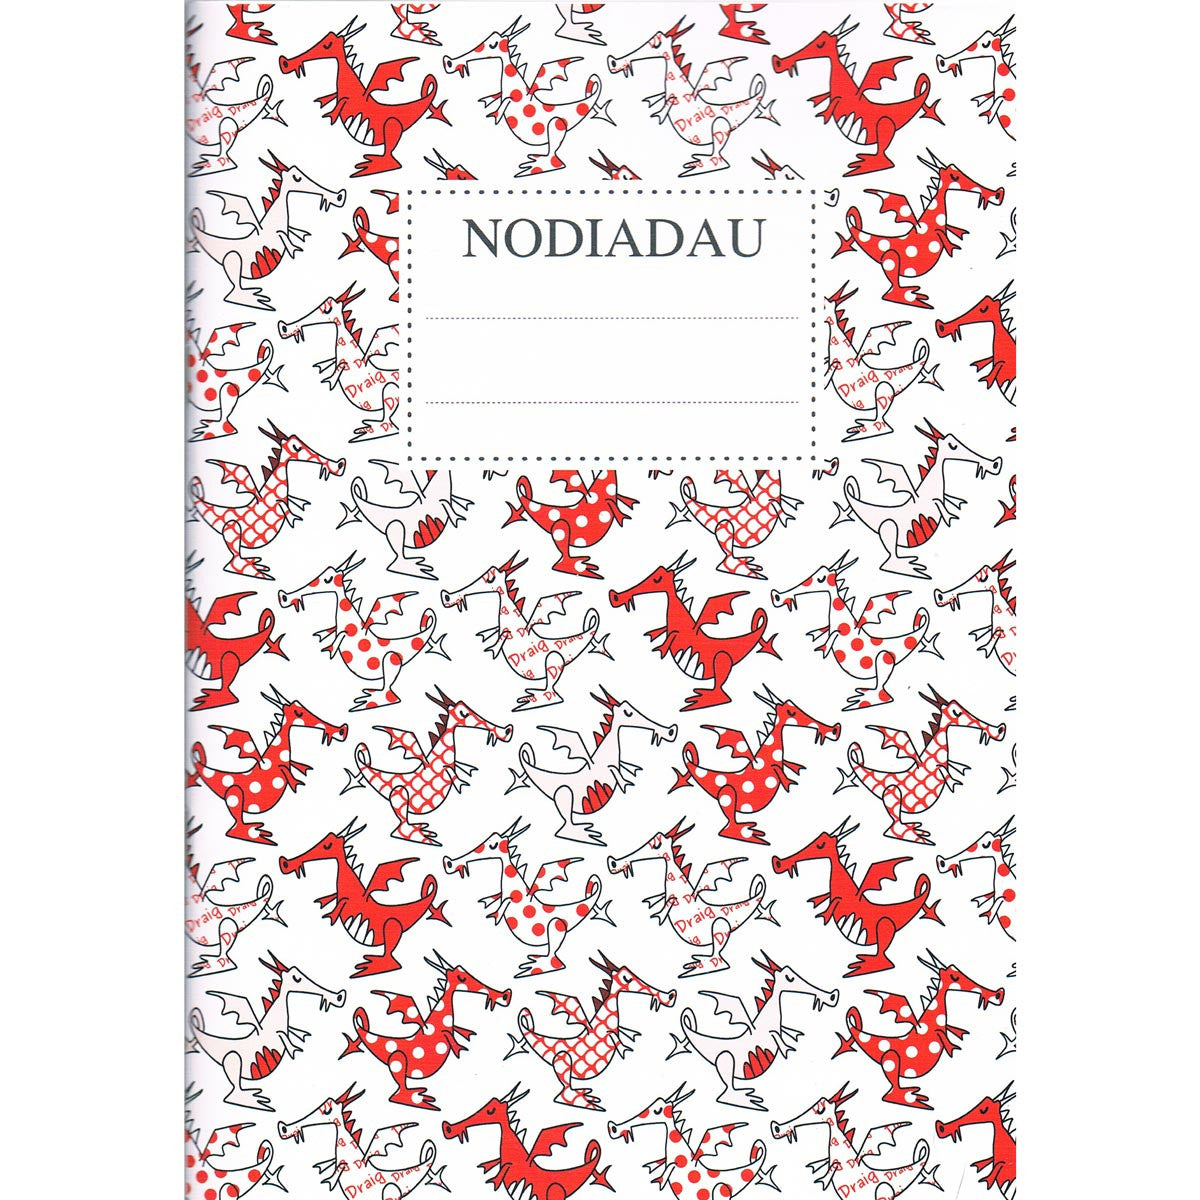 Notebook - Nodiadau - Welsh Dragons - A5-Note Book-The Welsh Gift Shop